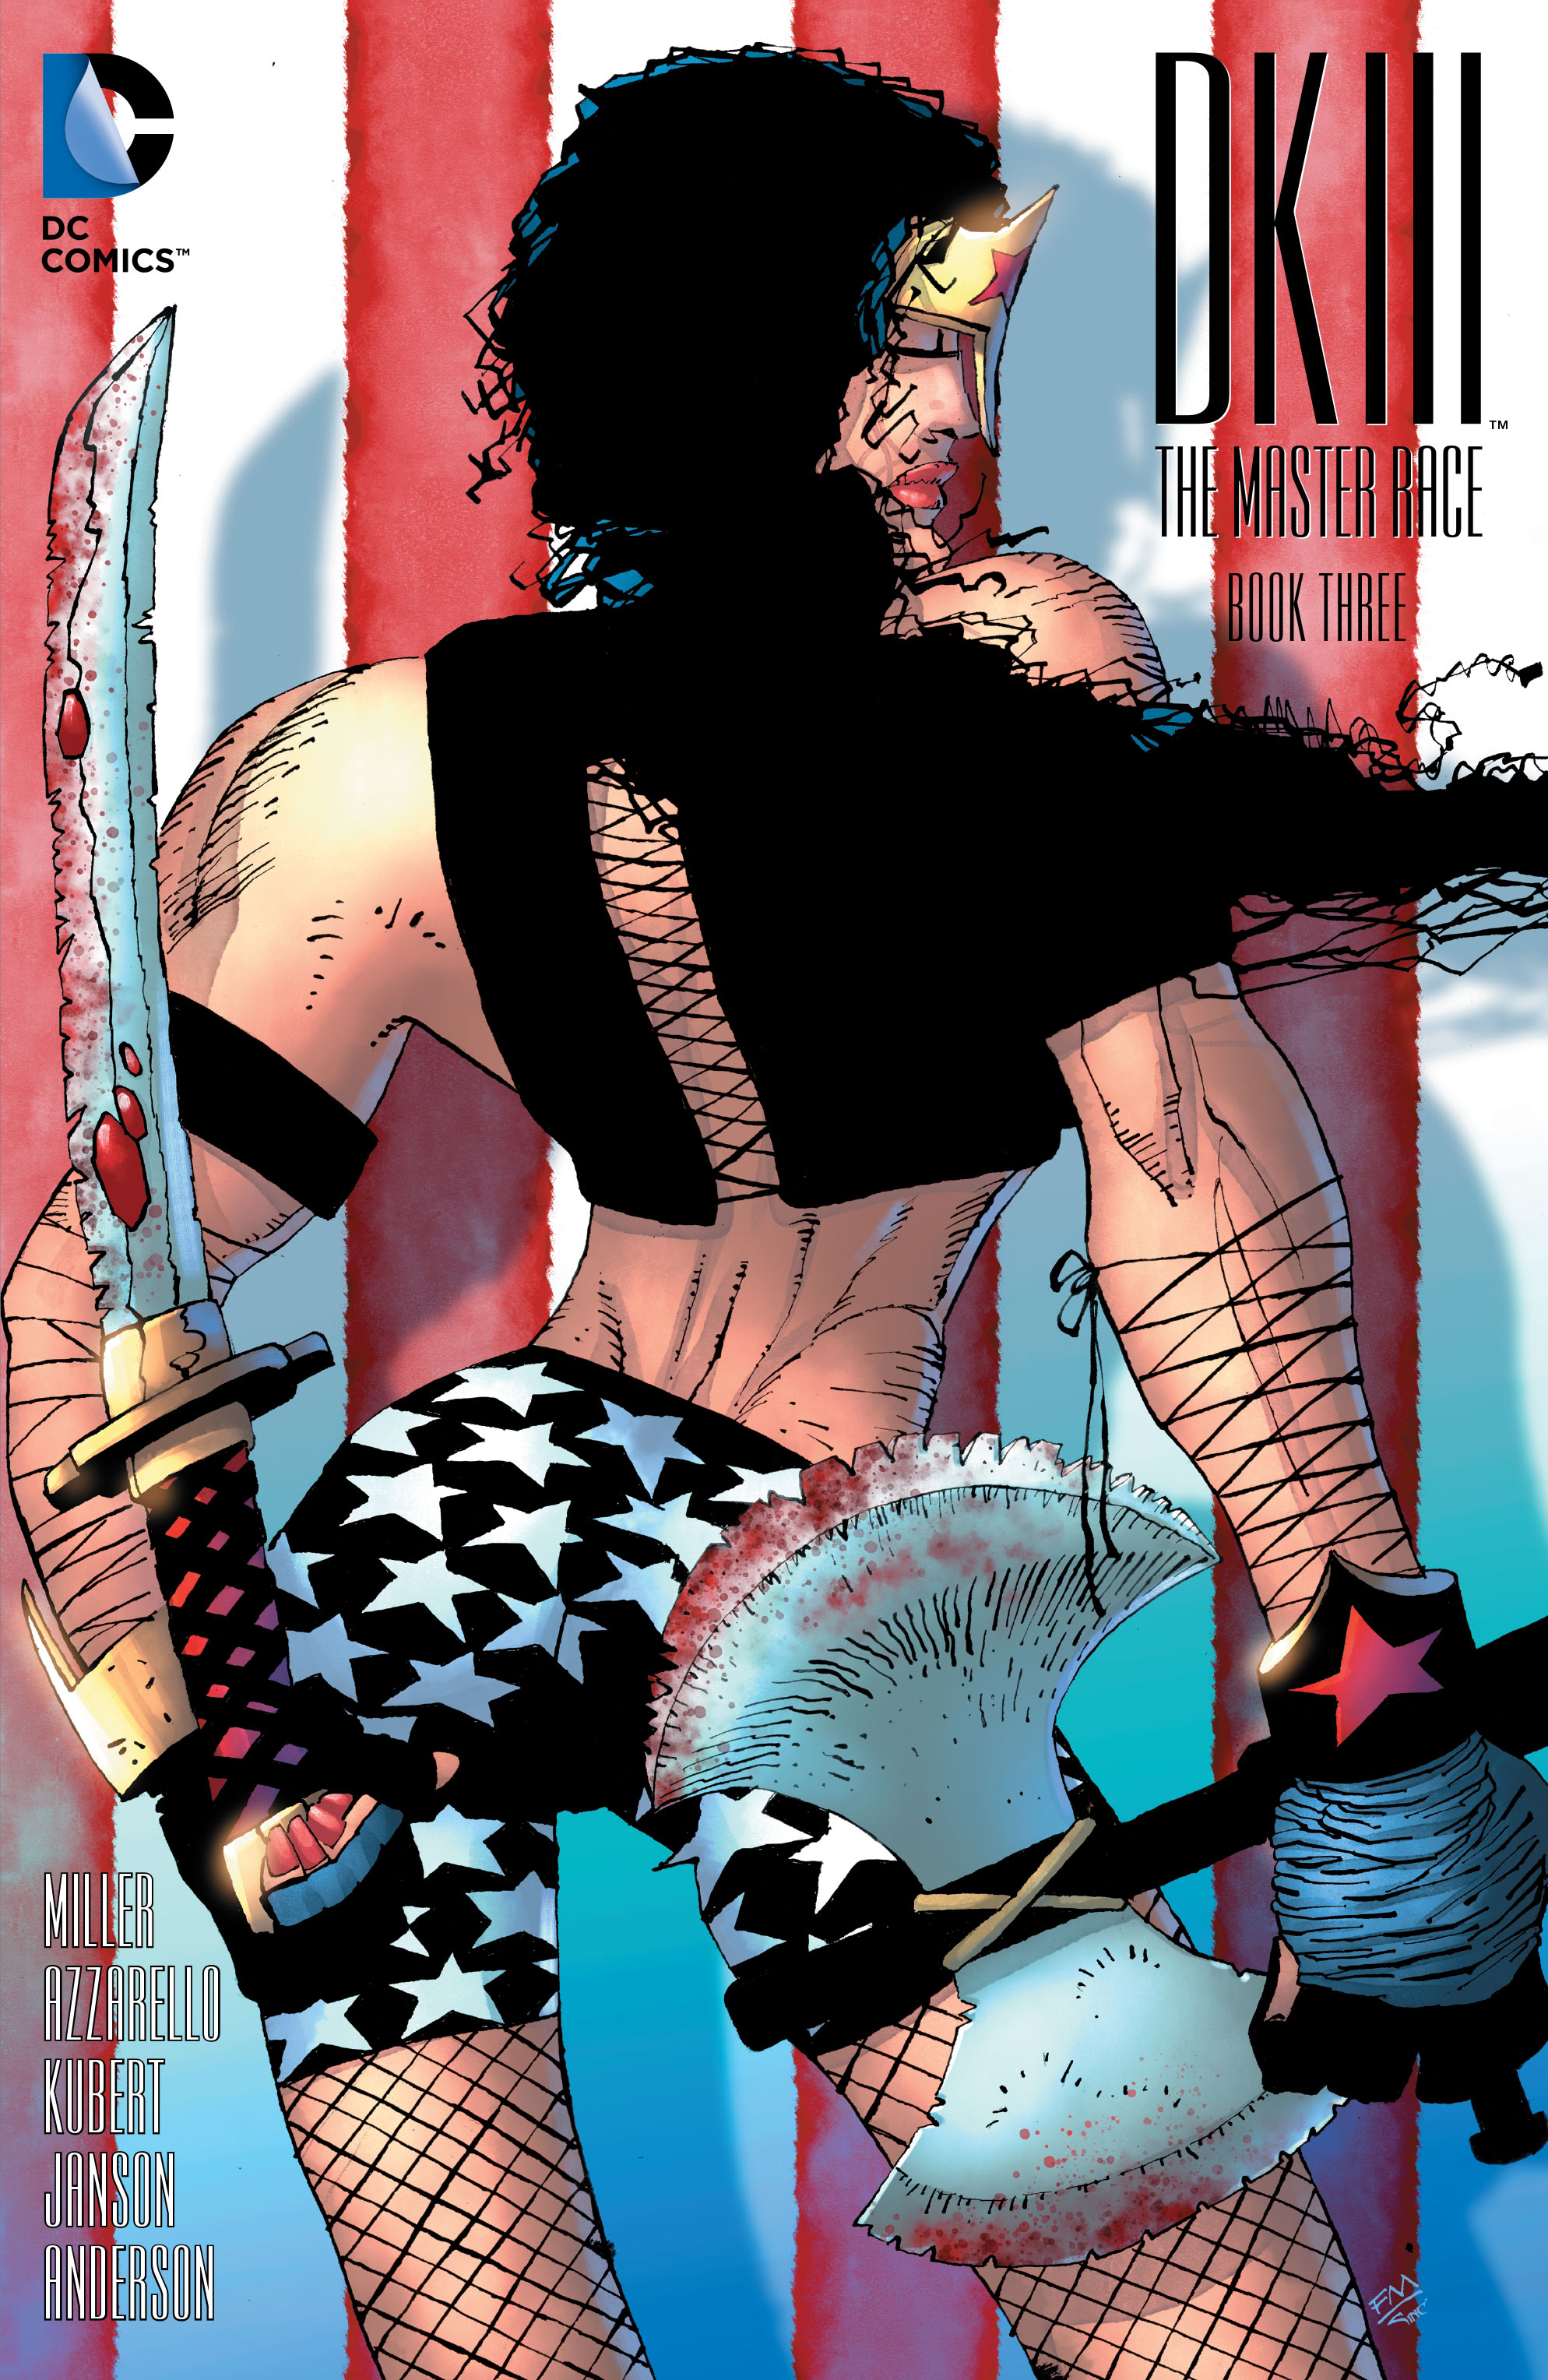 1 in 100 variant cover by Frank Miller